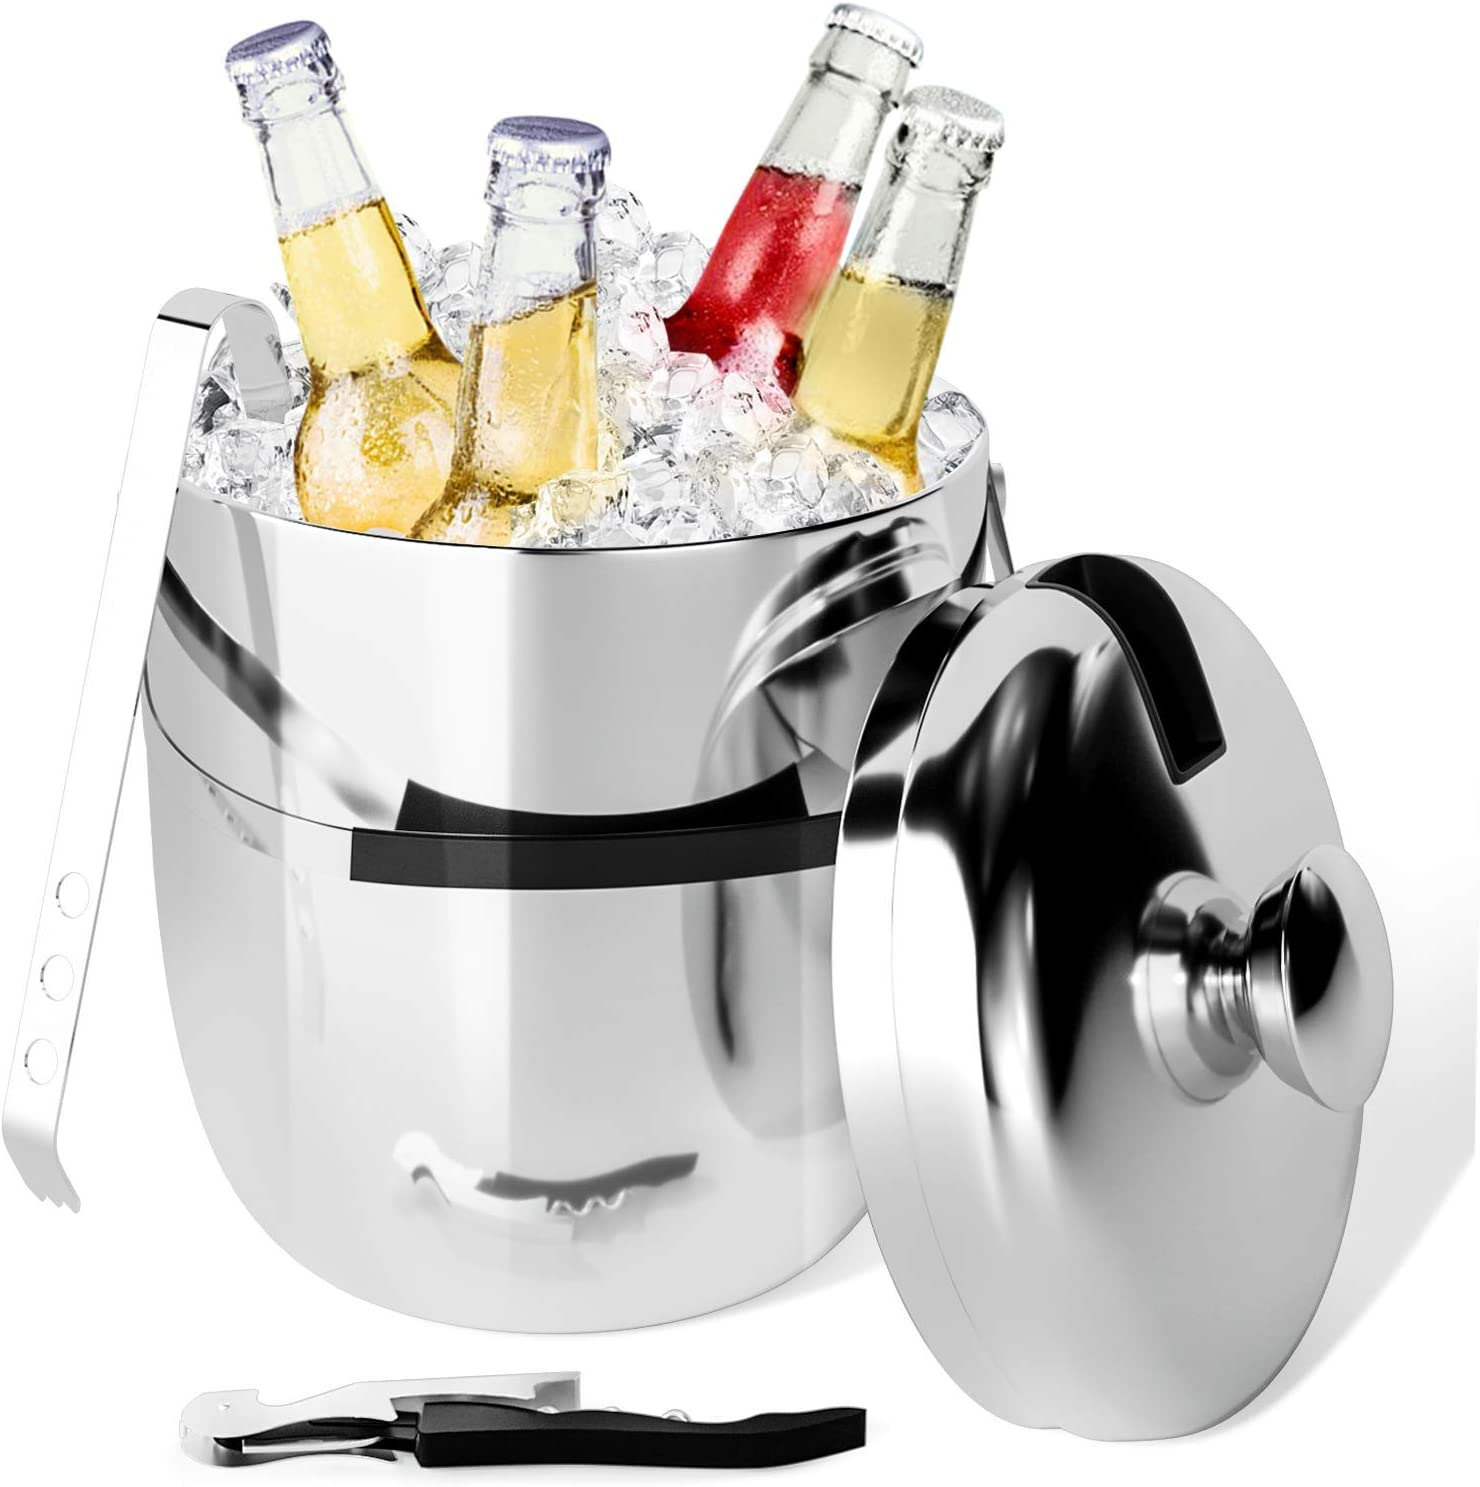 Peradix Ice Bucket with Lid and Ice Tongs, Insulated Stainless Steel Double Wall Keep Ice Frozen Longer and Food Fresh, Chiller Bin Basket for Parties, BBQ & Buffet - Bonus Corkscrew - 3L - SUS304